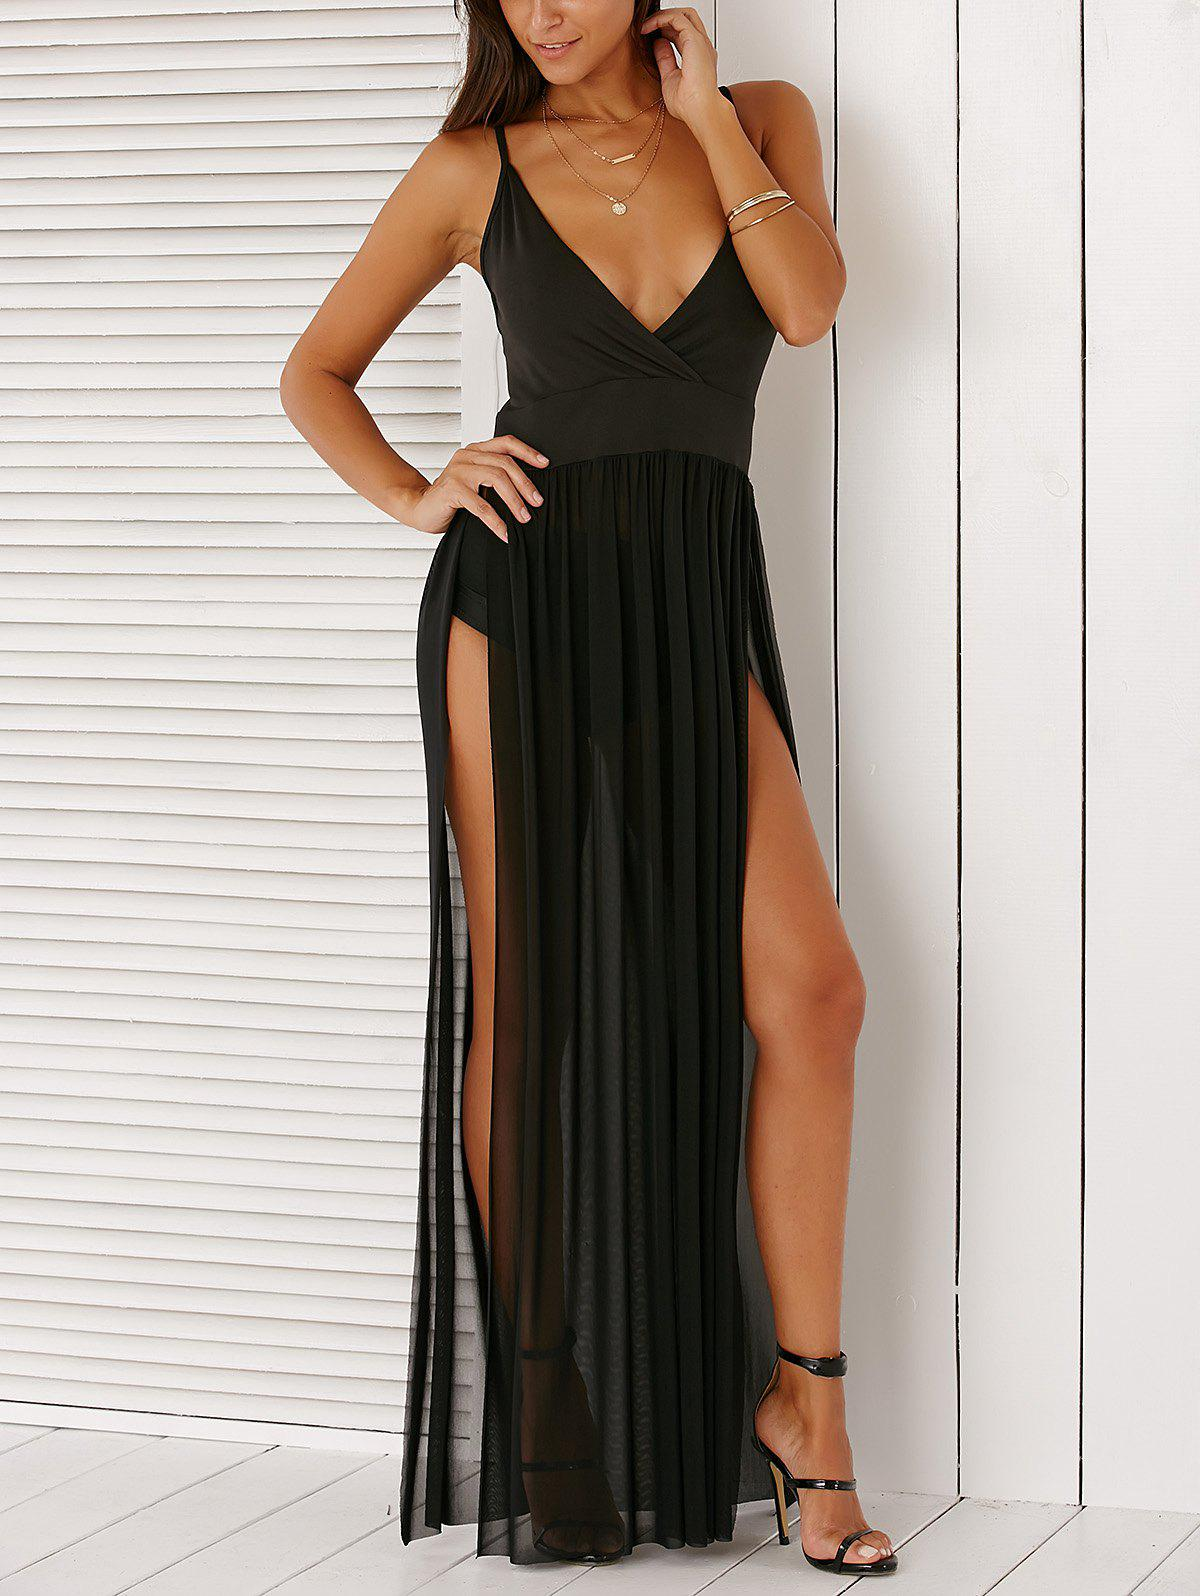 Spaghetti Strap High Slit Backless Maxi Black Dress For Women - BLACK XL